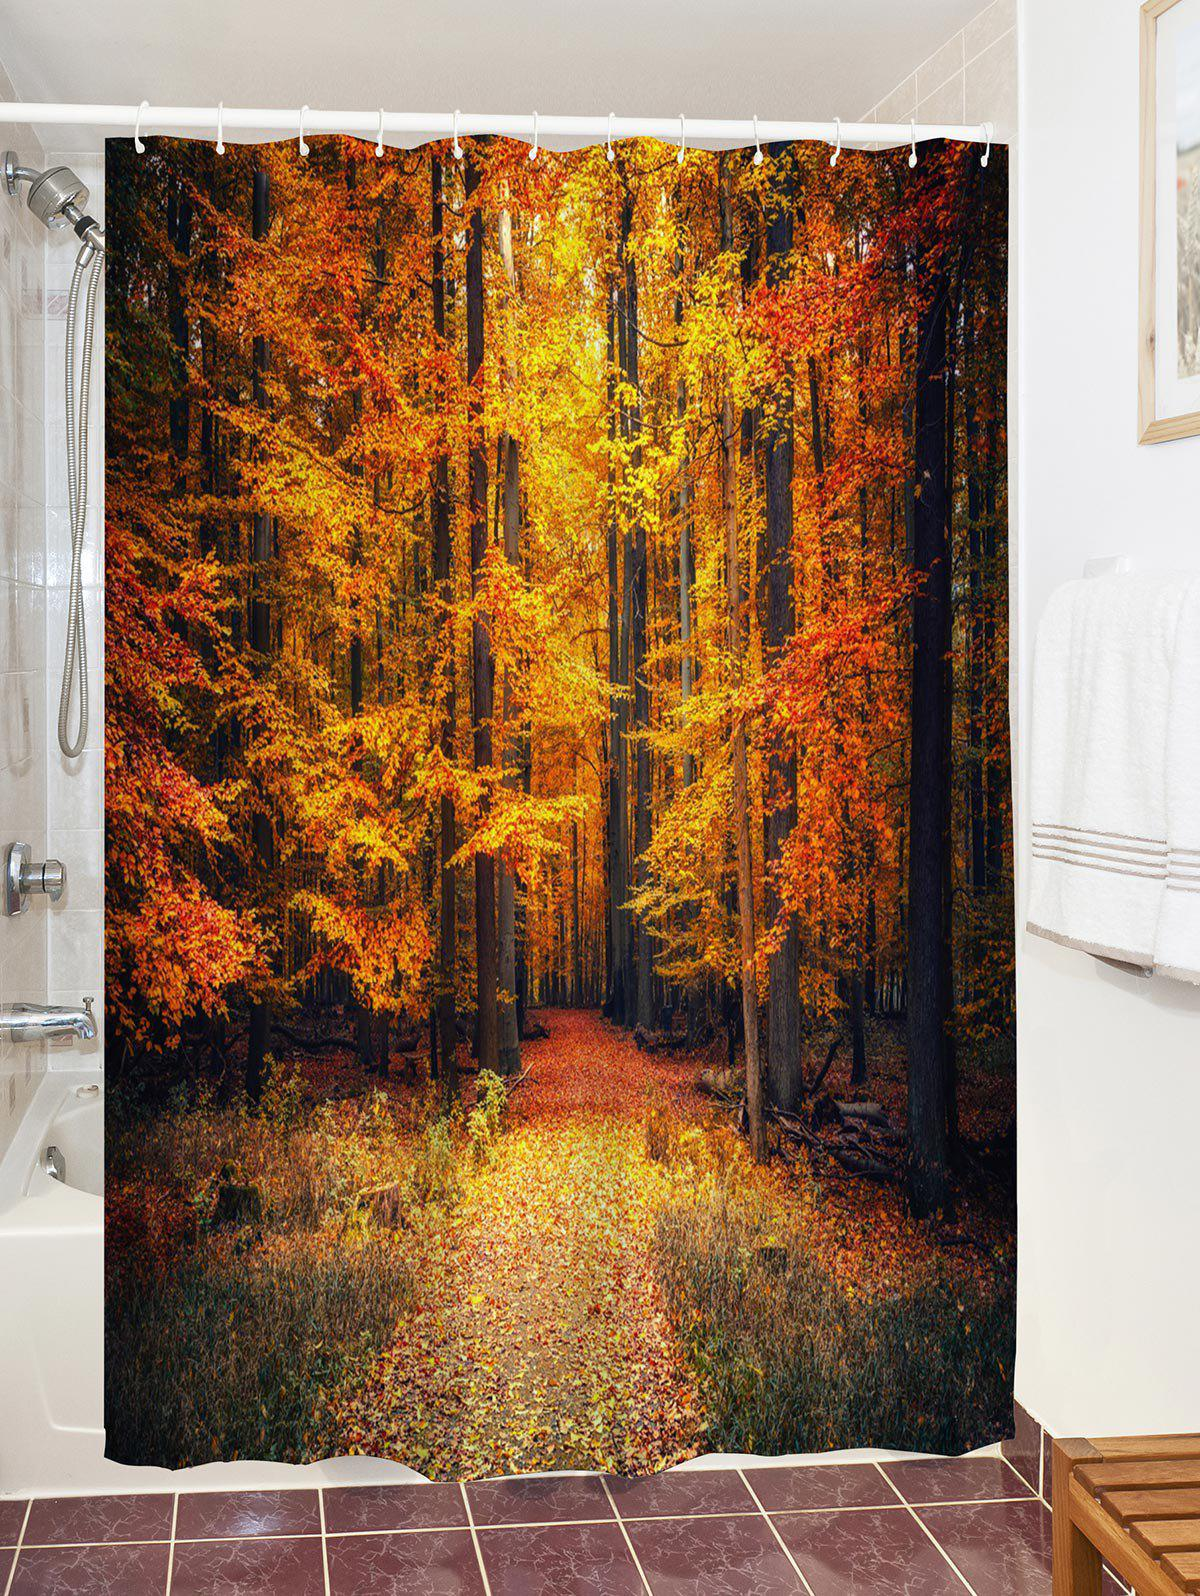 Autumn Forest Printed Waterproof Shower Curtain - GOLD BROWN W71 INCH * L79 INCH